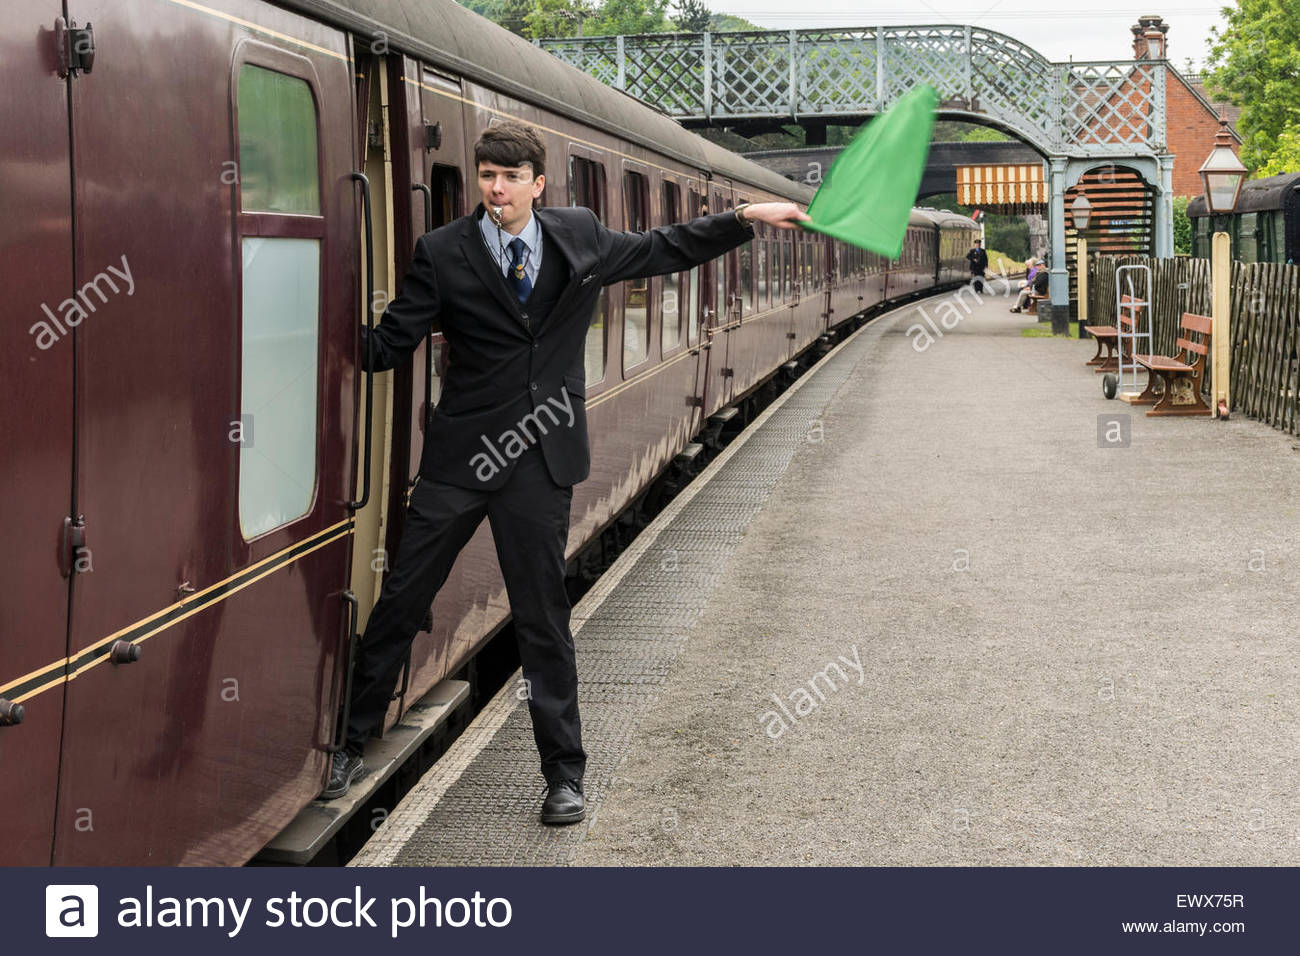 The guard signals that the train is ready to depart from Weybourne Station on the North Norfolk Railway - Stock Image